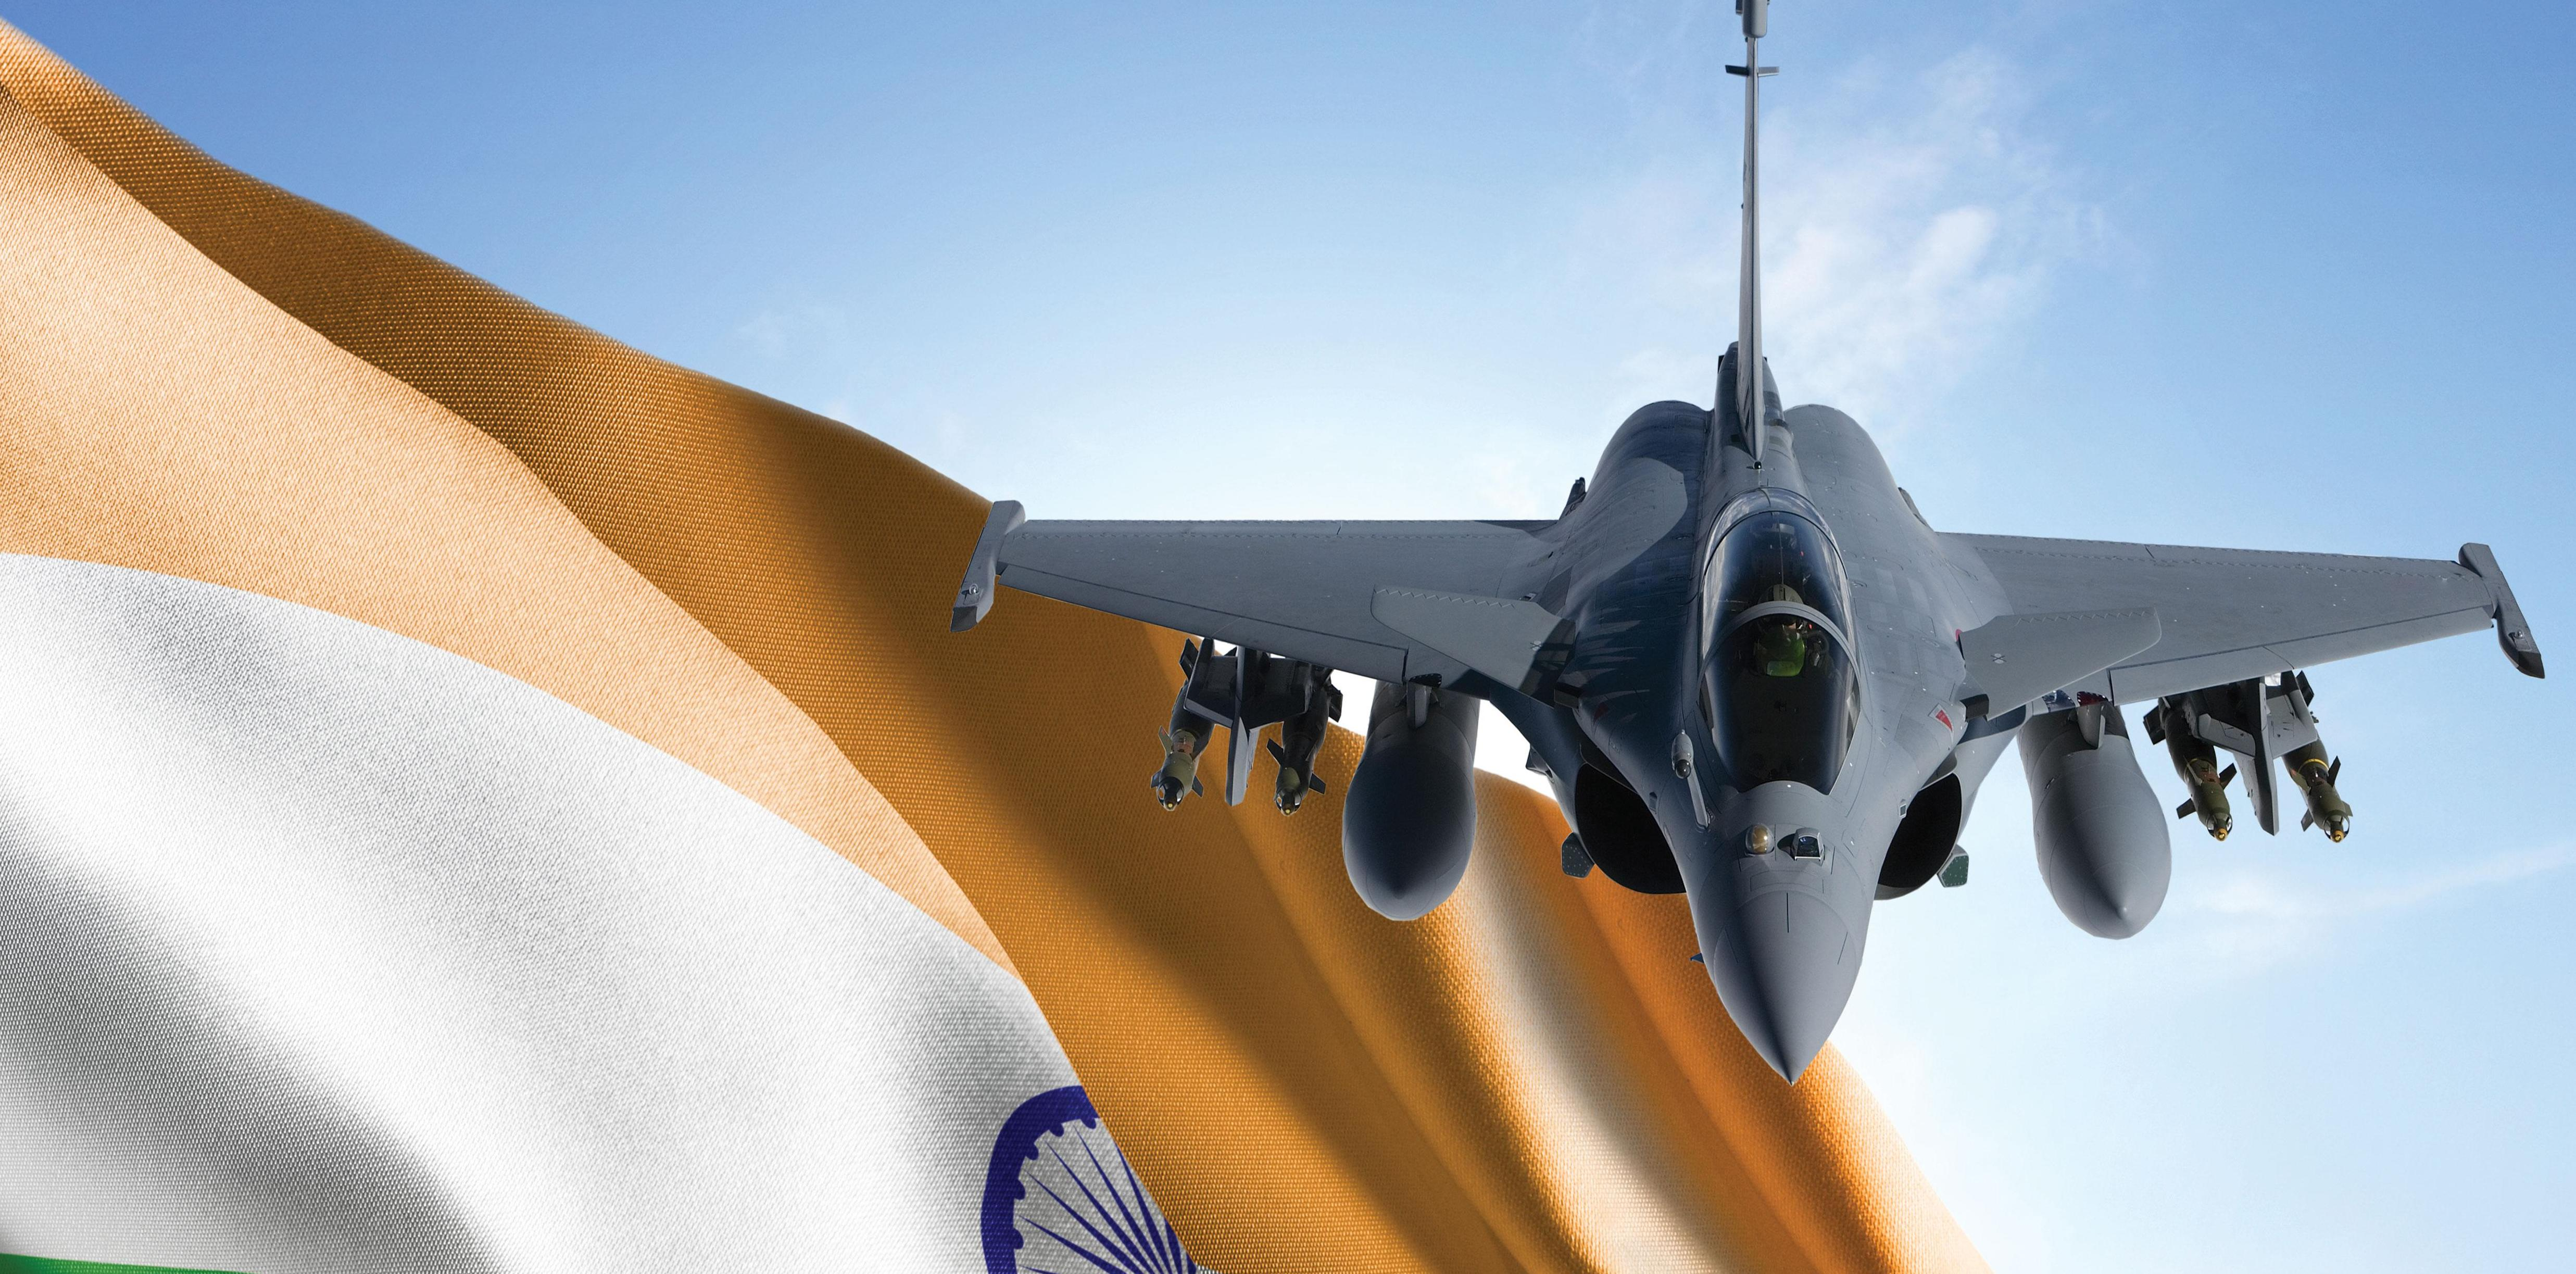 The Indian Air Force signs up for 36 Rafale aircraft